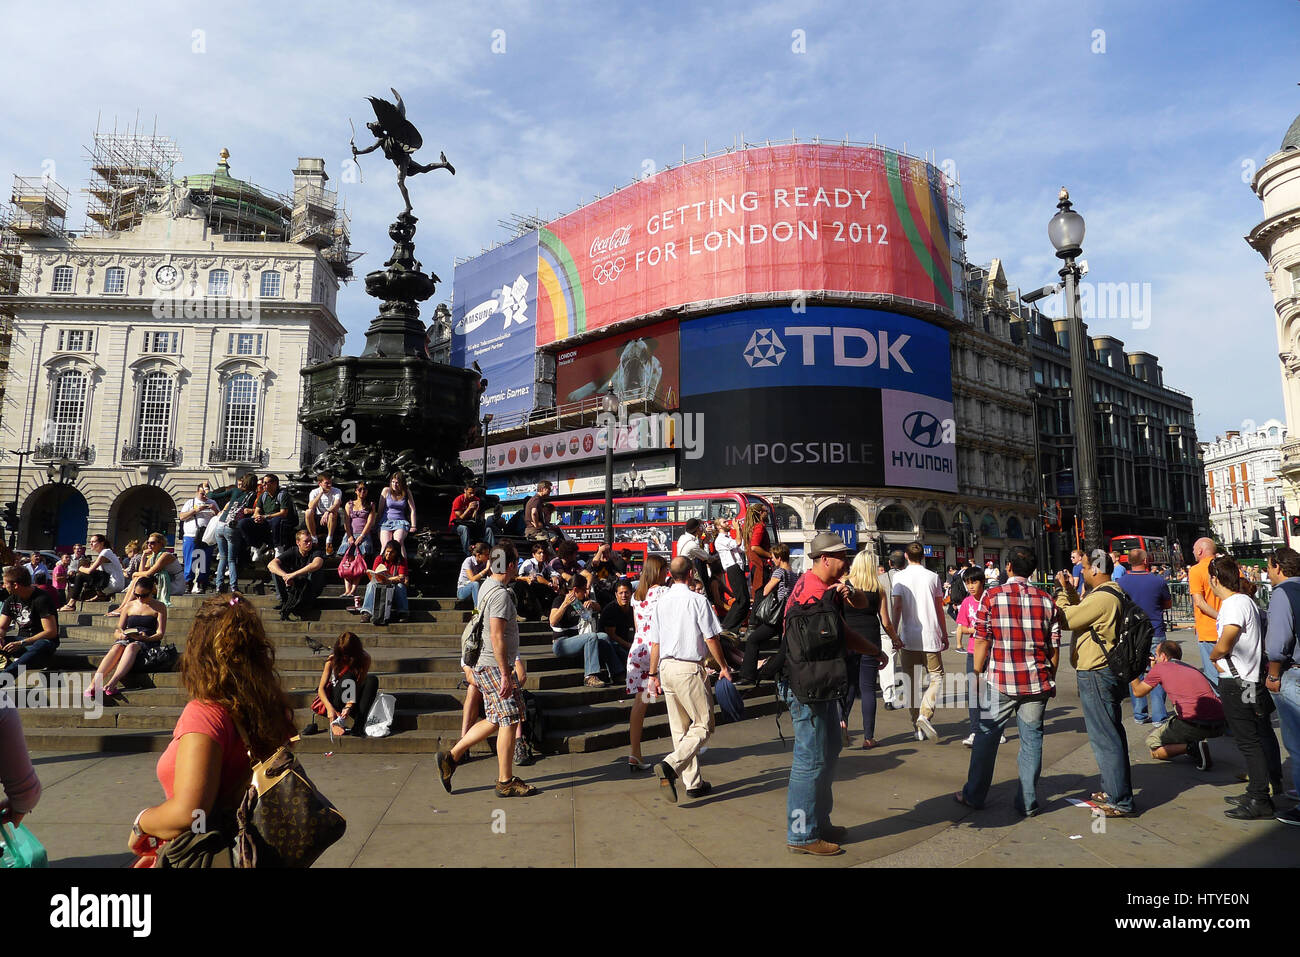 Piccadilly Circus surrounded by illuminated advertising hoardings on buildings. - Stock Image